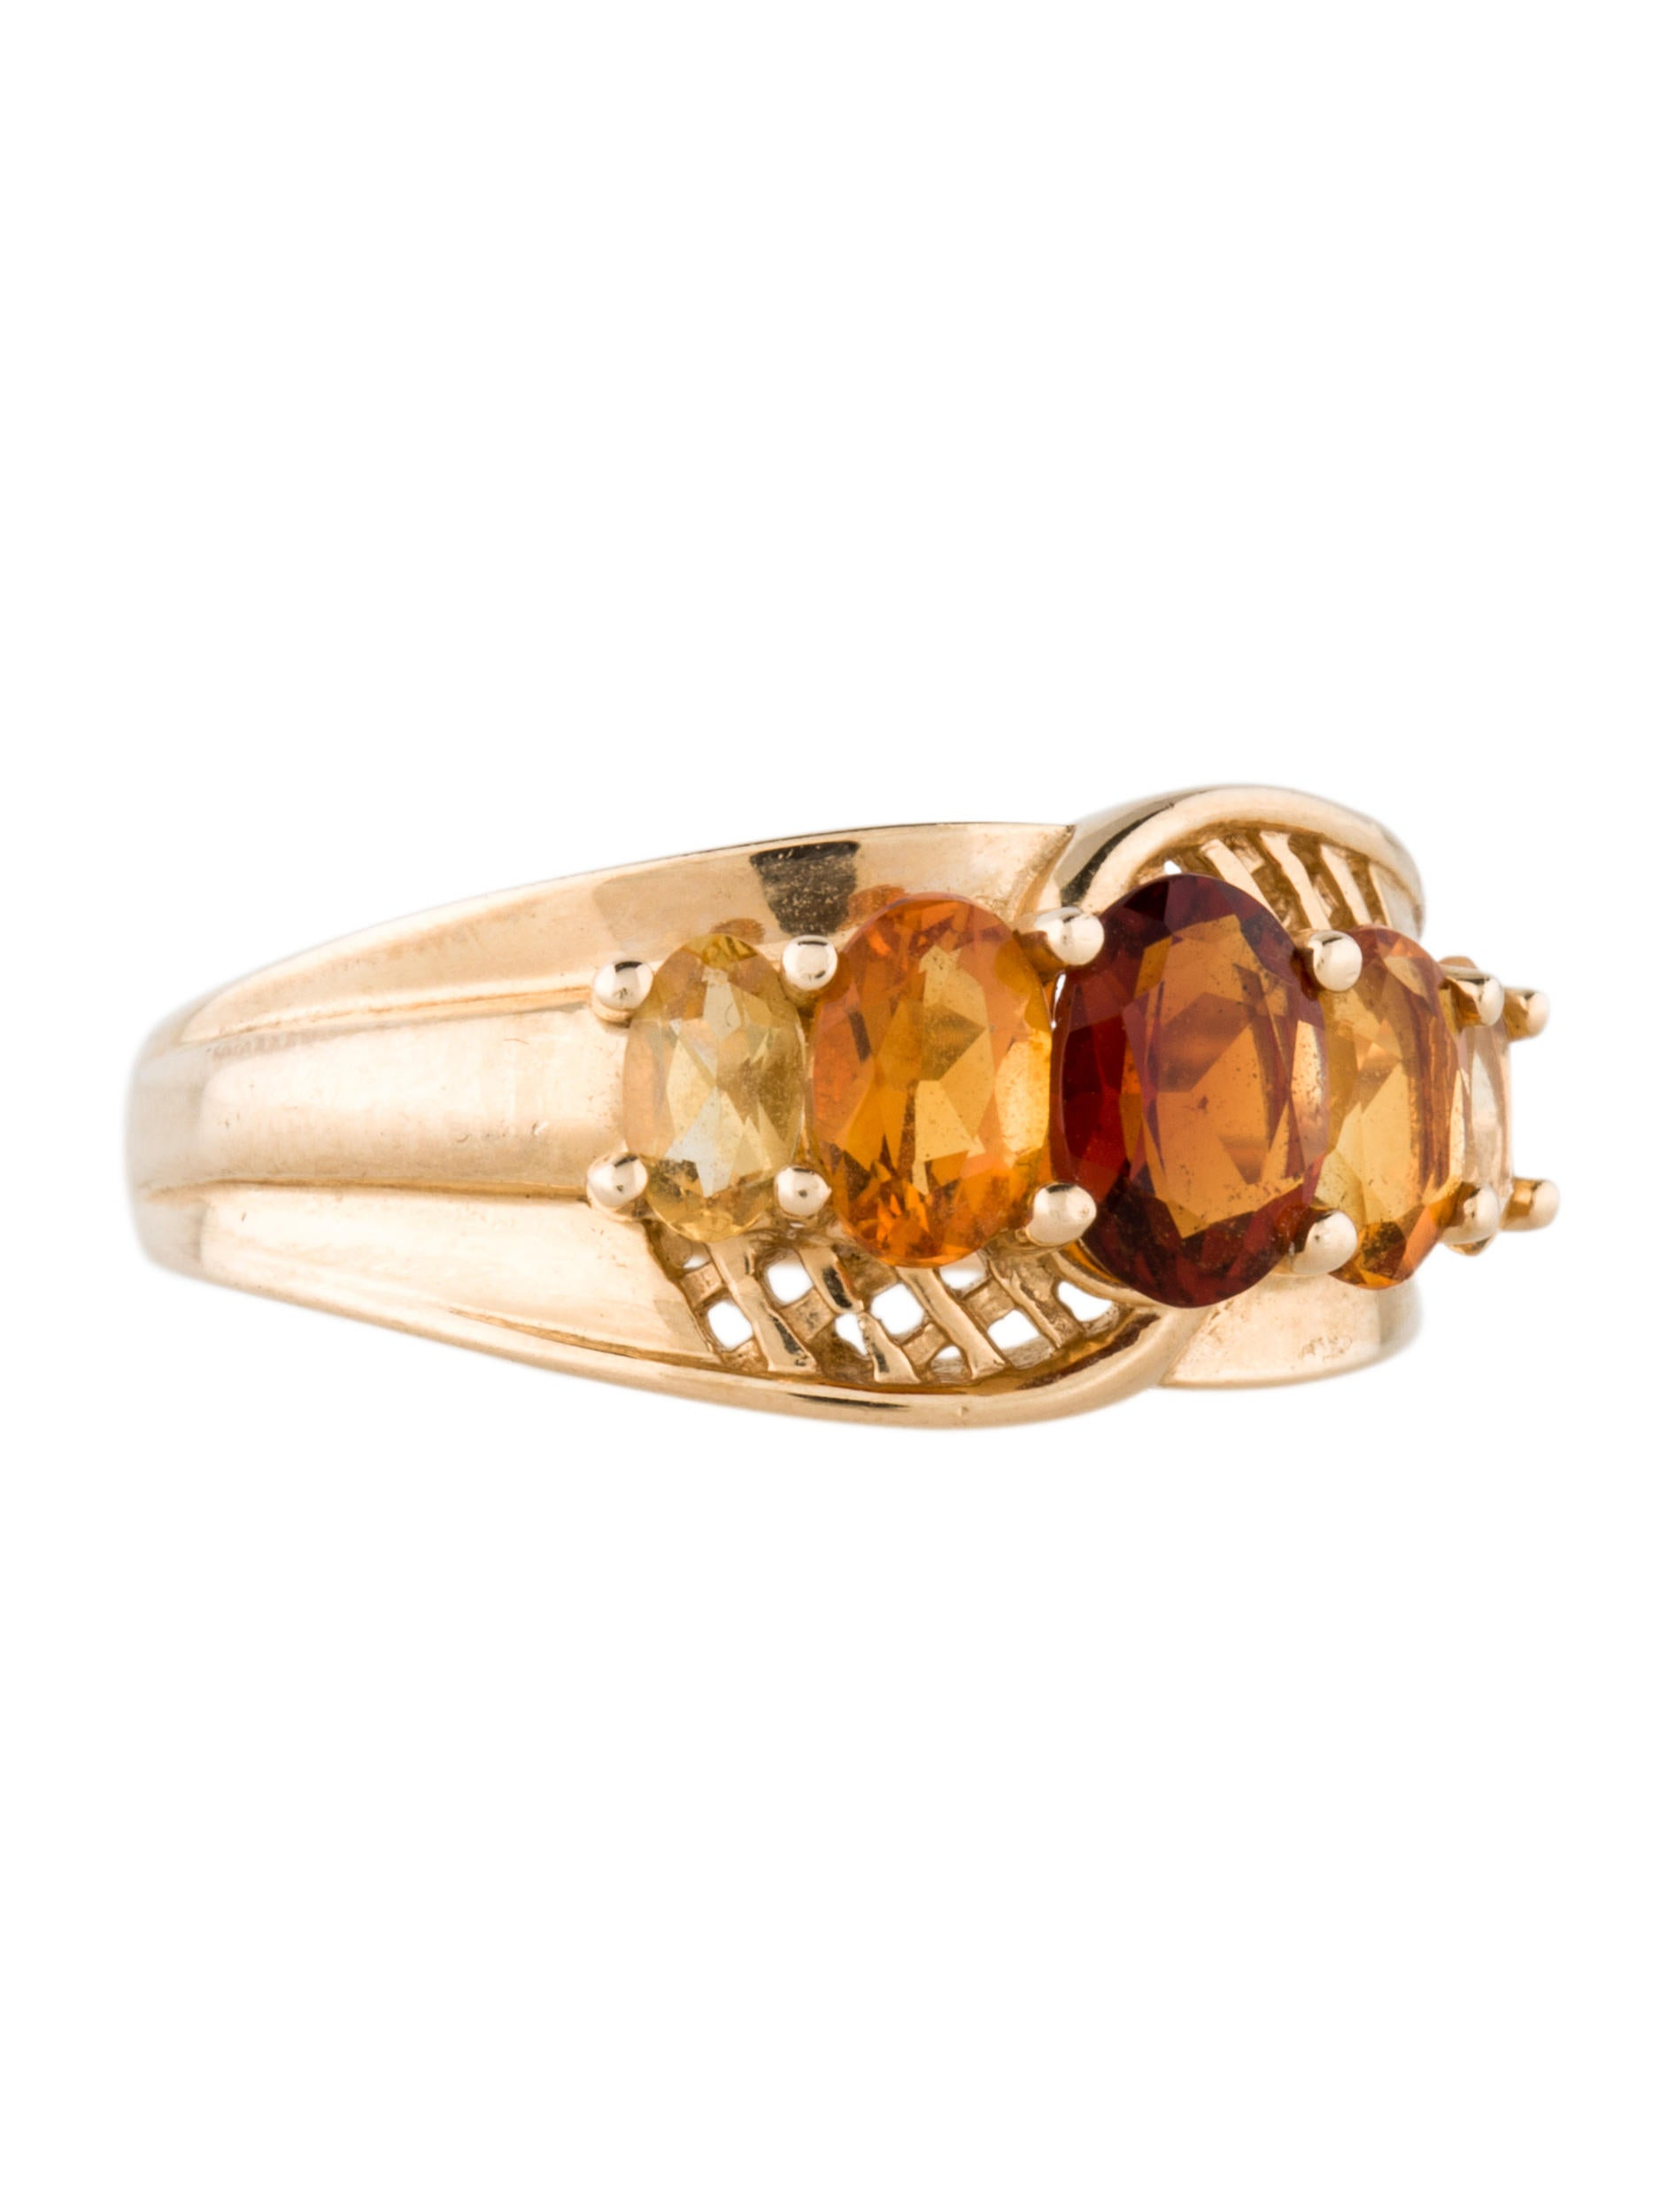 5stone citrine cocktail ring rings fjr27017 the